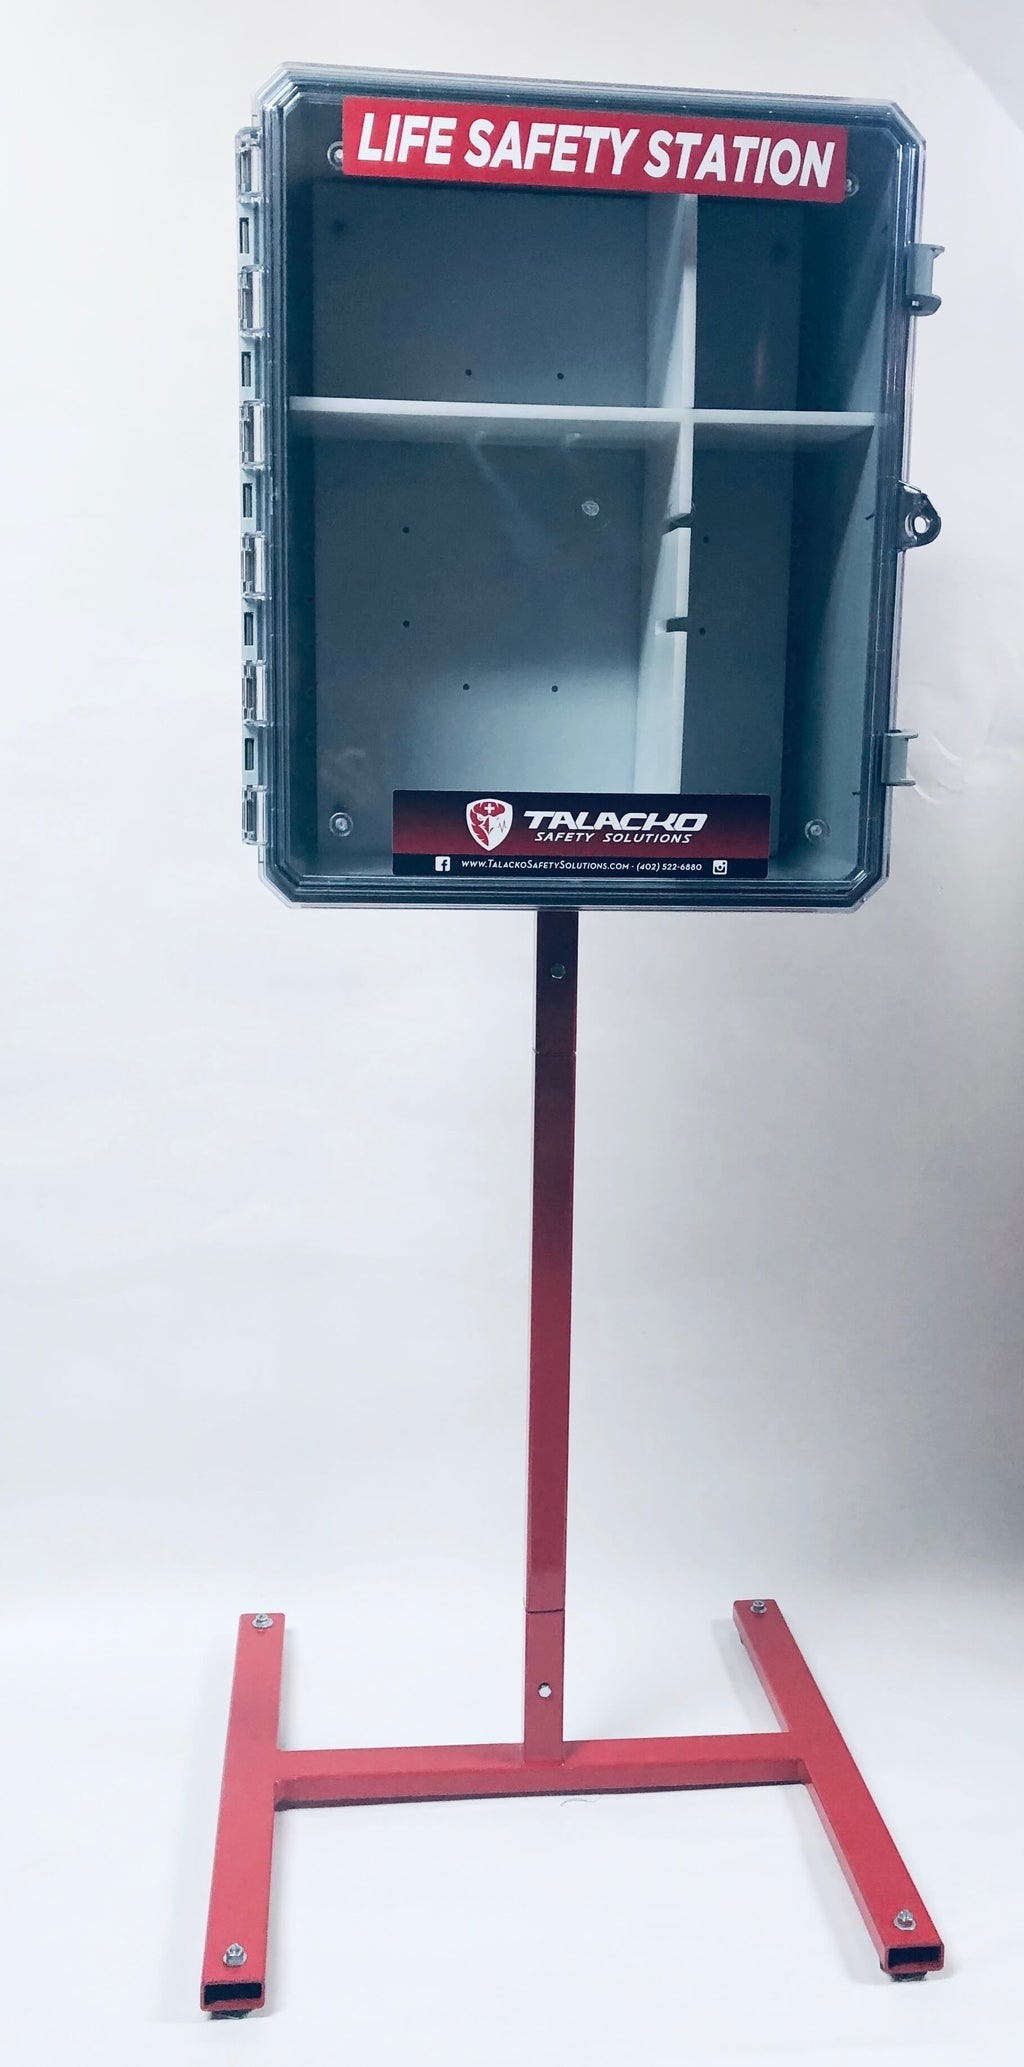 Talacko Safety Solutions Emergency Equipment Platform allows our Life Safety Station and our King Bleeding Control Station to be placed ANYWHERE indoors or out